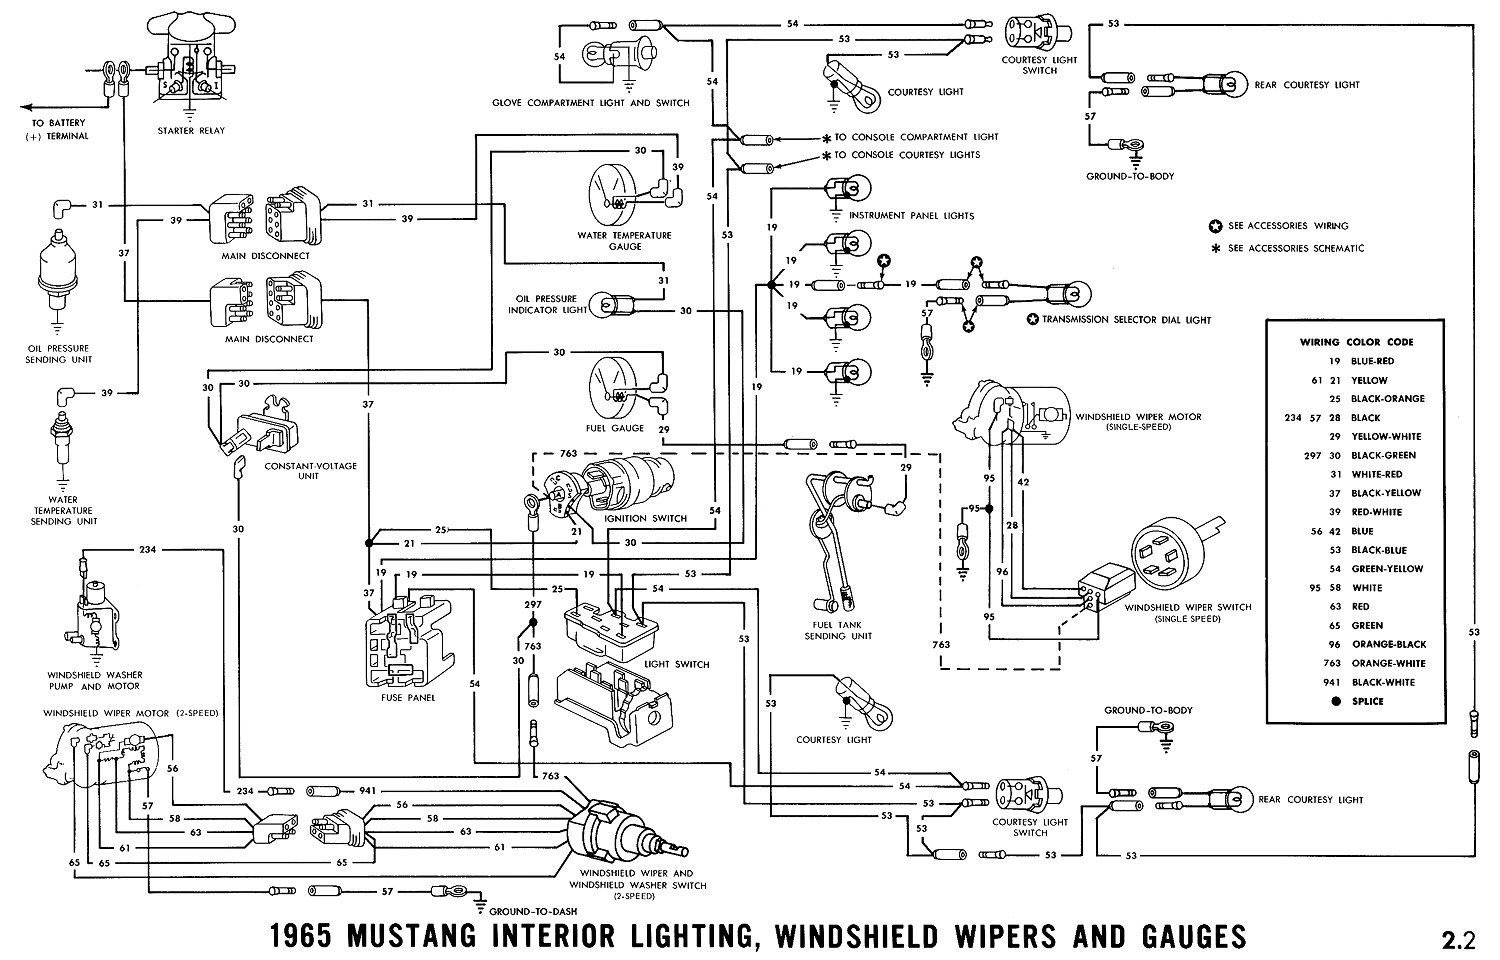 1965g 1968 mustang wiring diagram manual 68 mustang ignition wiring  at webbmarketing.co